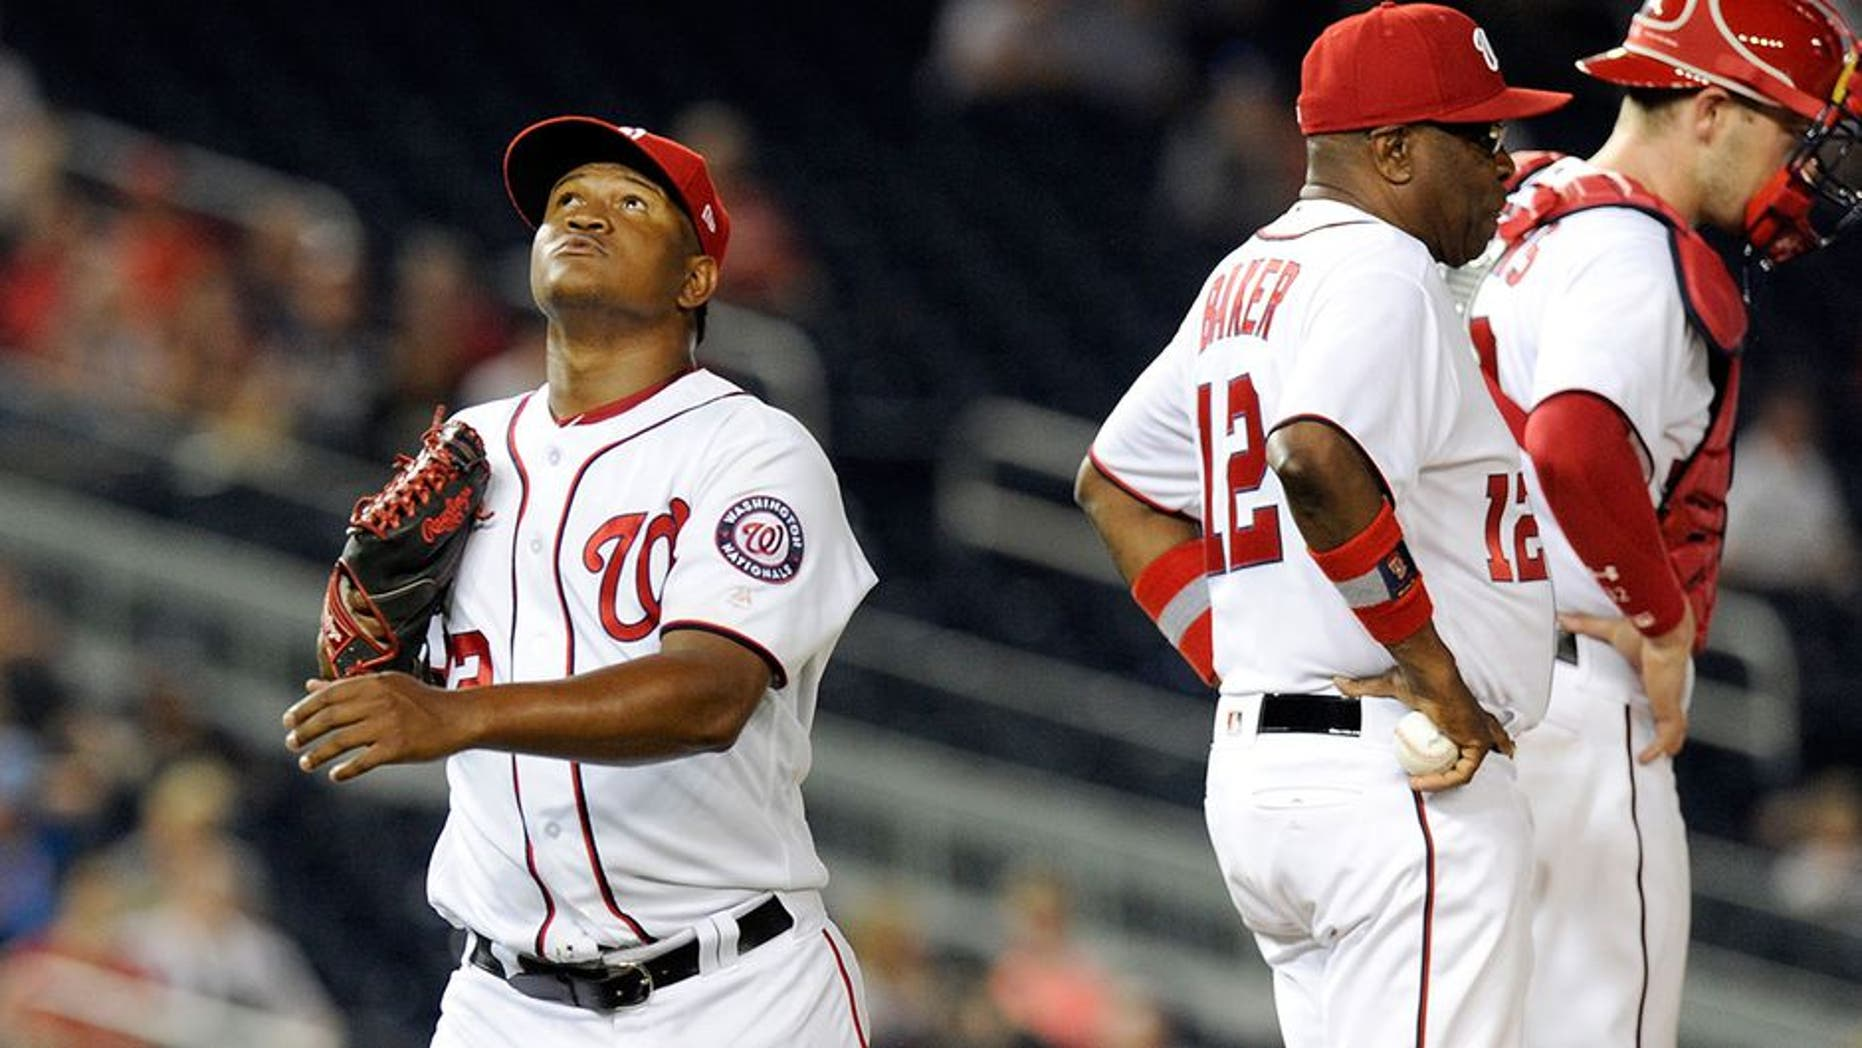 WASHINGTON, DC - JUNE 12: Enny Romero #72 of the Washington Nationals walks to the dugout after being removed from the game in the eighth inning against the Atlanta Braves at Nationals Park on June 12, 2017 in Washington, DC. Atlanta won the game 11-10. (Photo by Greg Fiume/Getty Images)